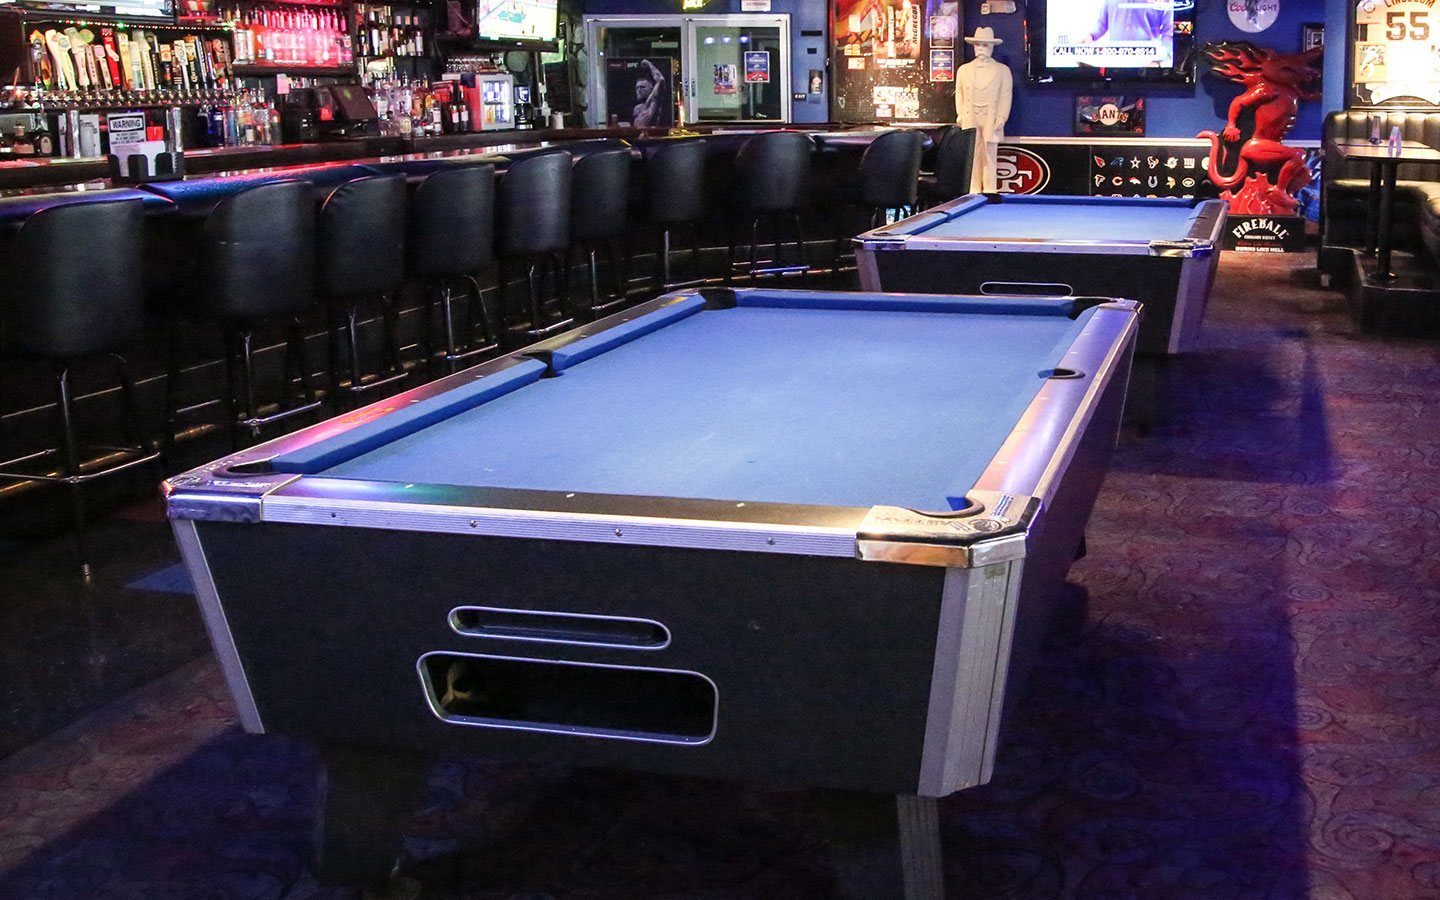 Free pool tournament